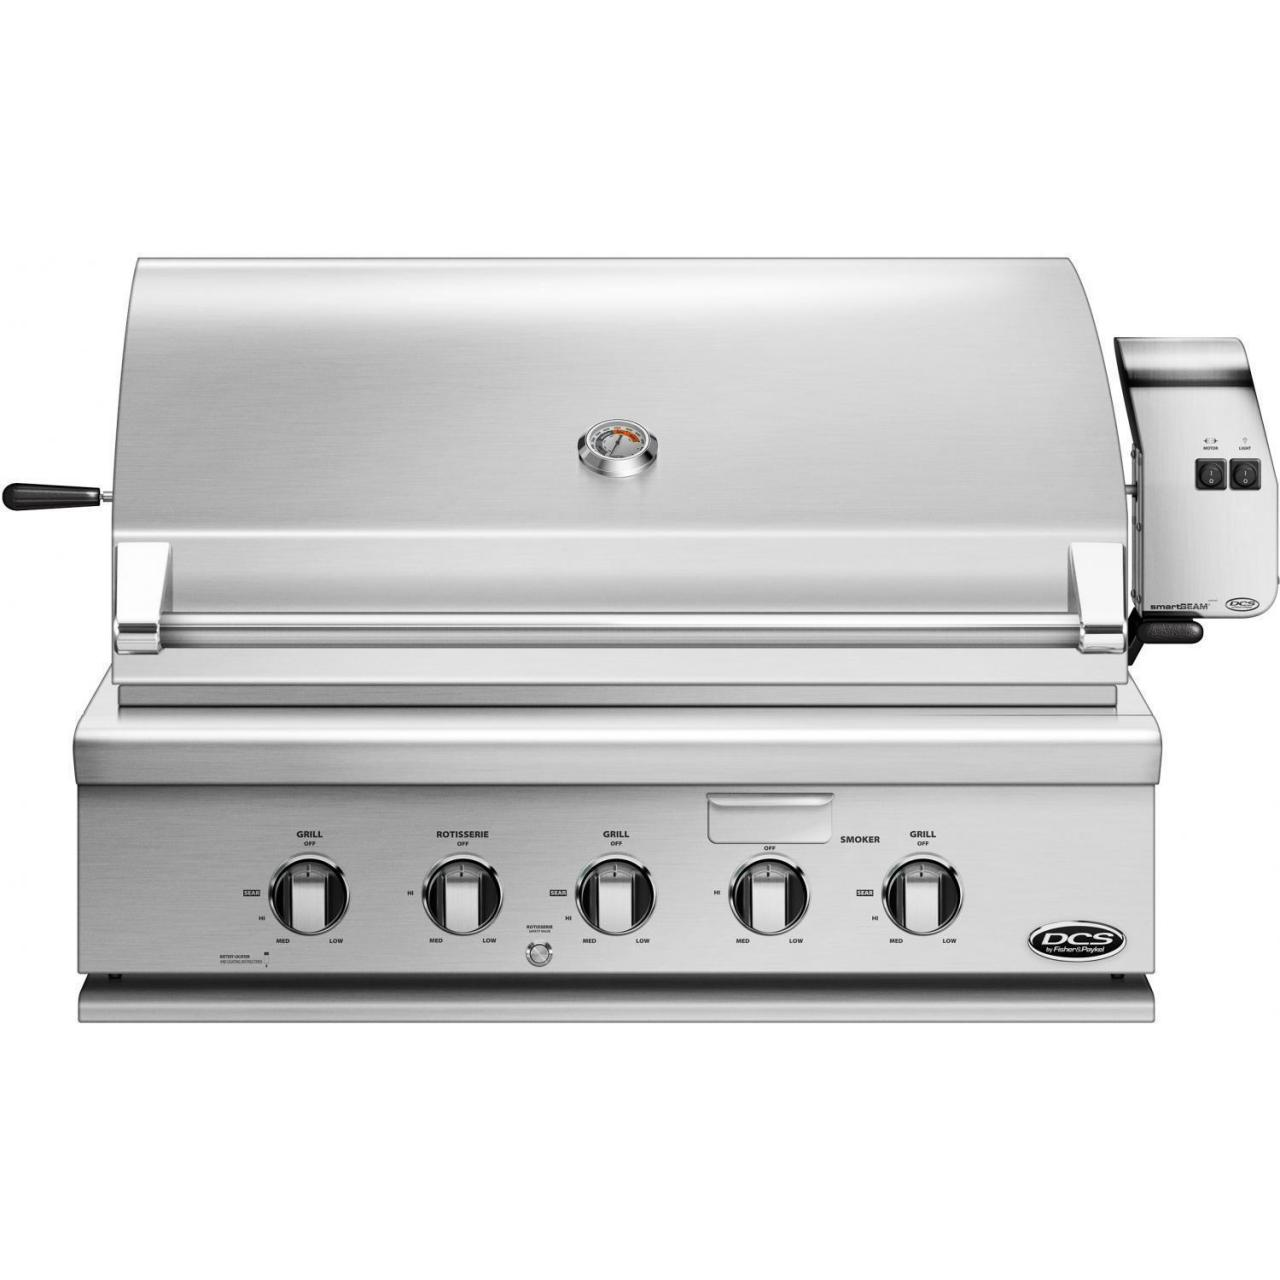 China DCS Professional 36-Inch Built-In Natural Gas Grill With Rotisserie - BH1-36R-N on sale